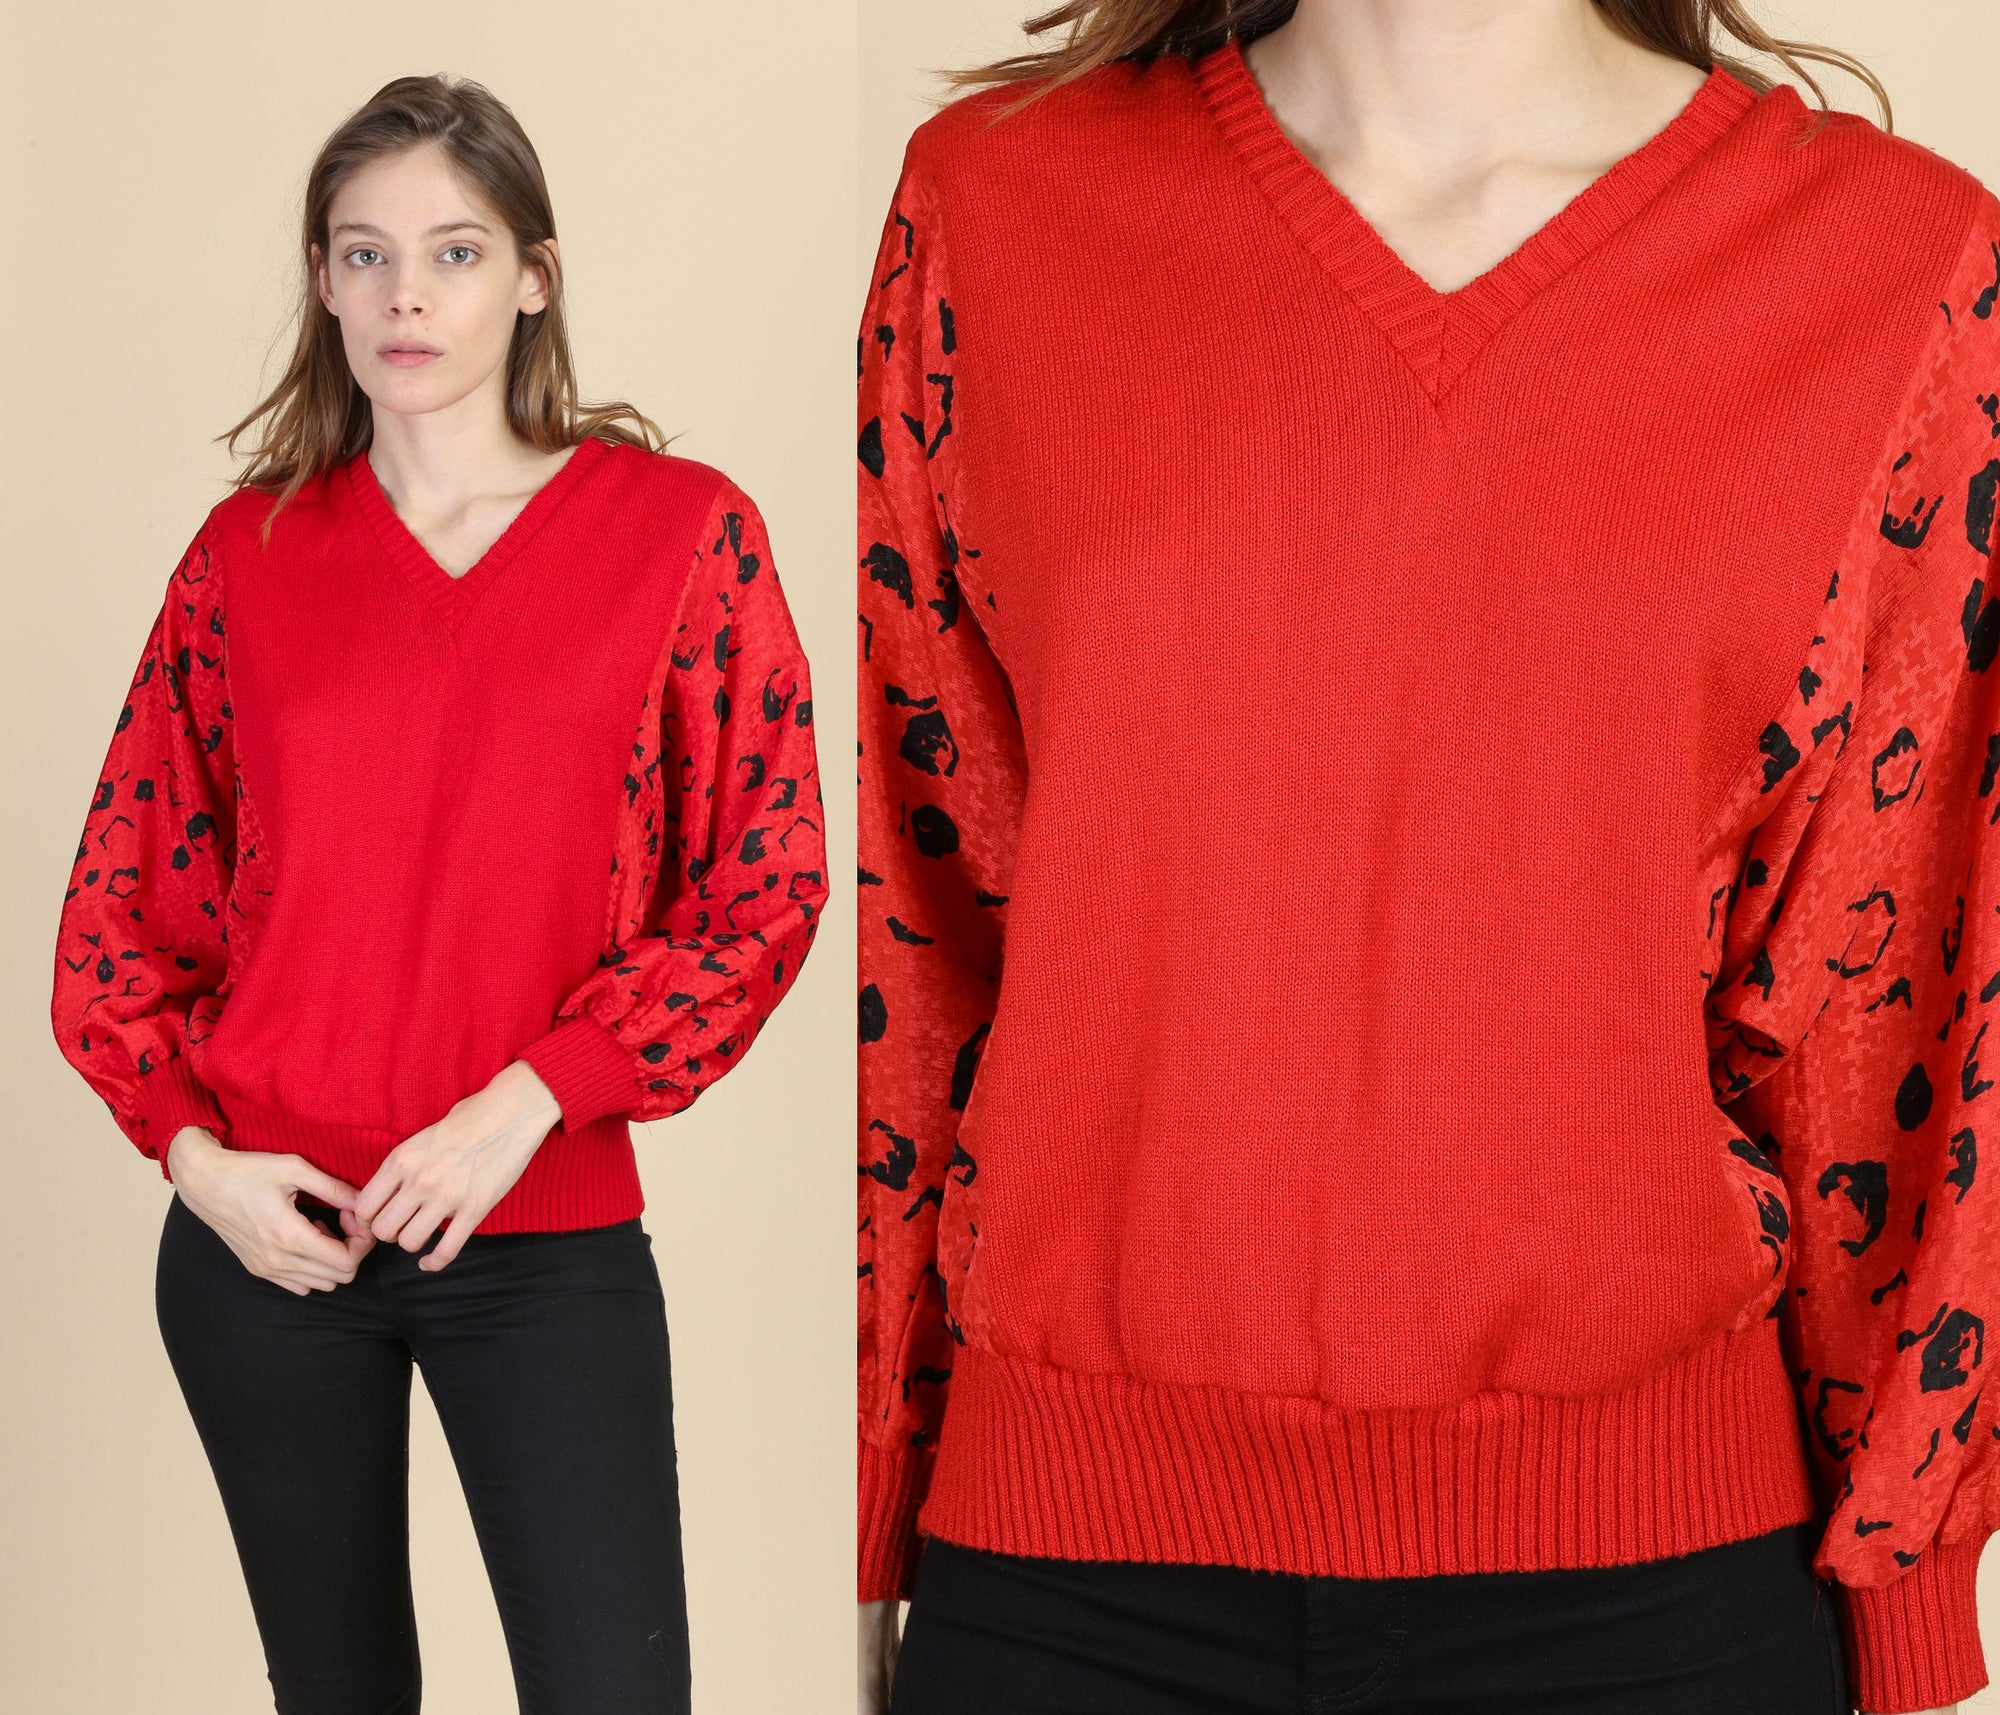 80s Red Batwing Sleeve Sweater - Medium